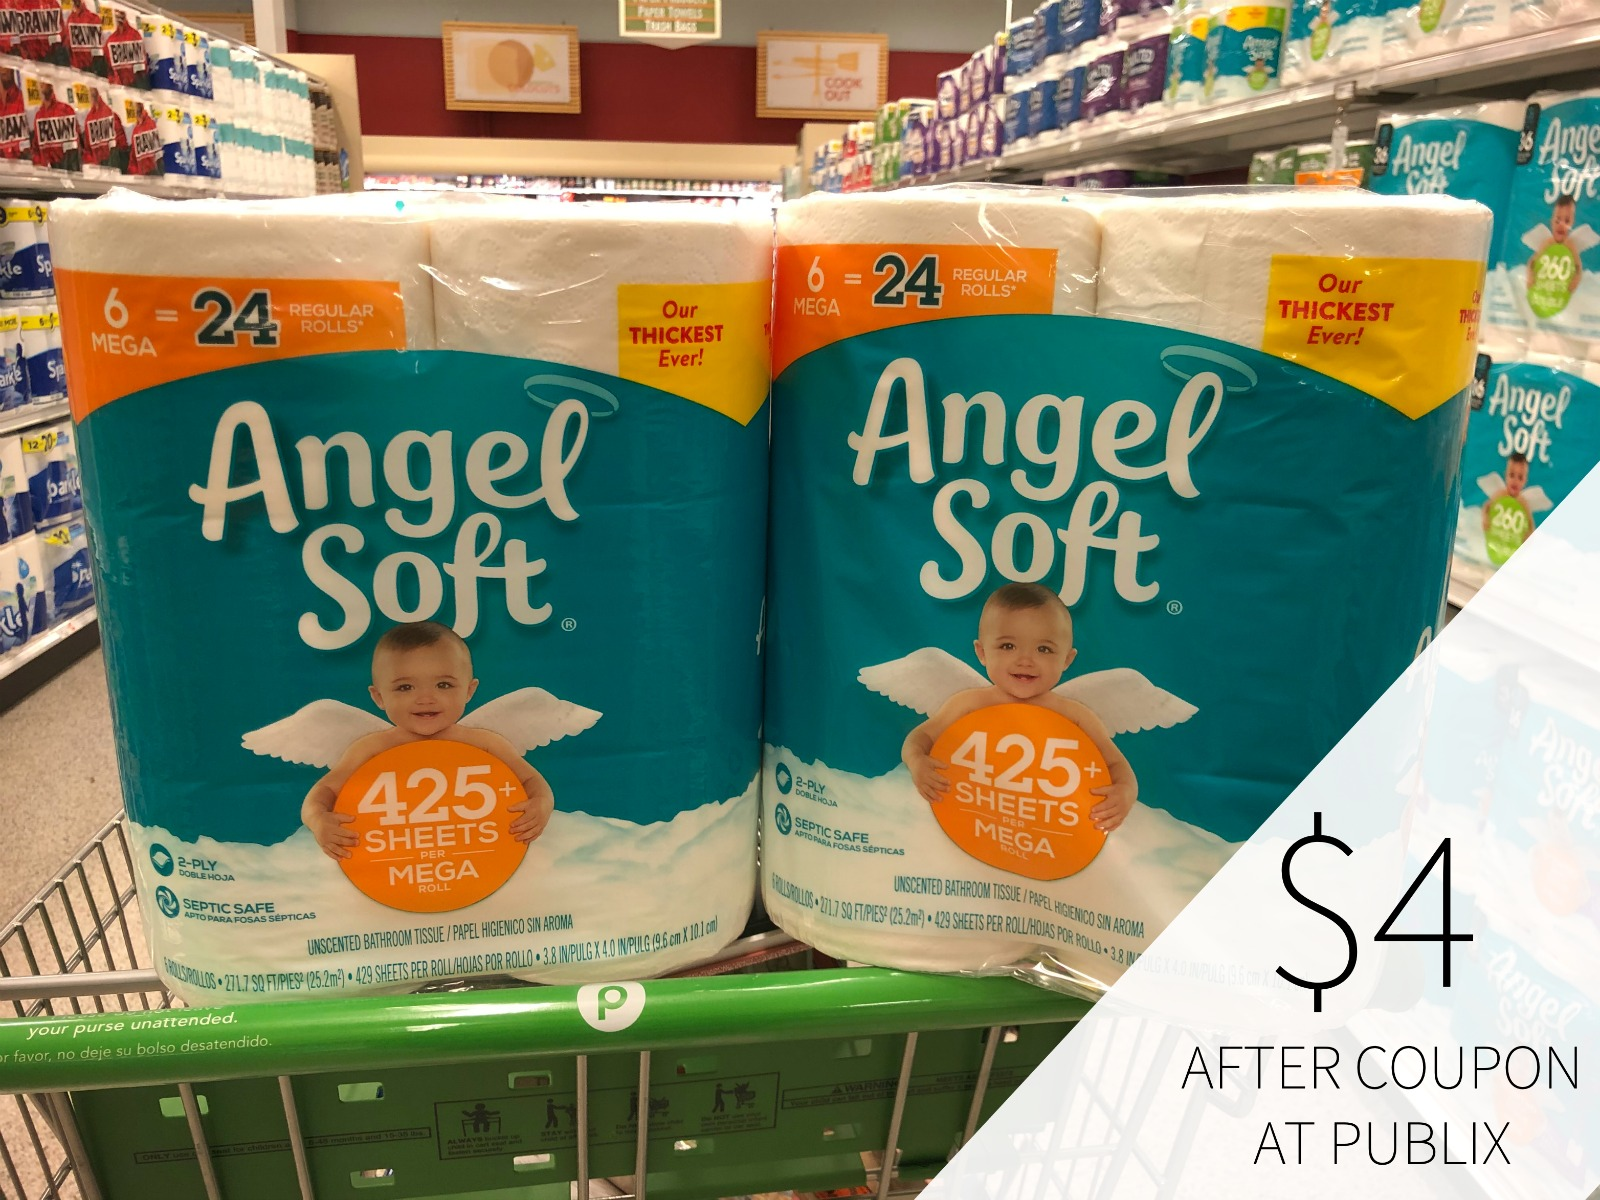 Can't Miss Deals On Angel Soft Toilet Paper At Publix on I Heart Publix